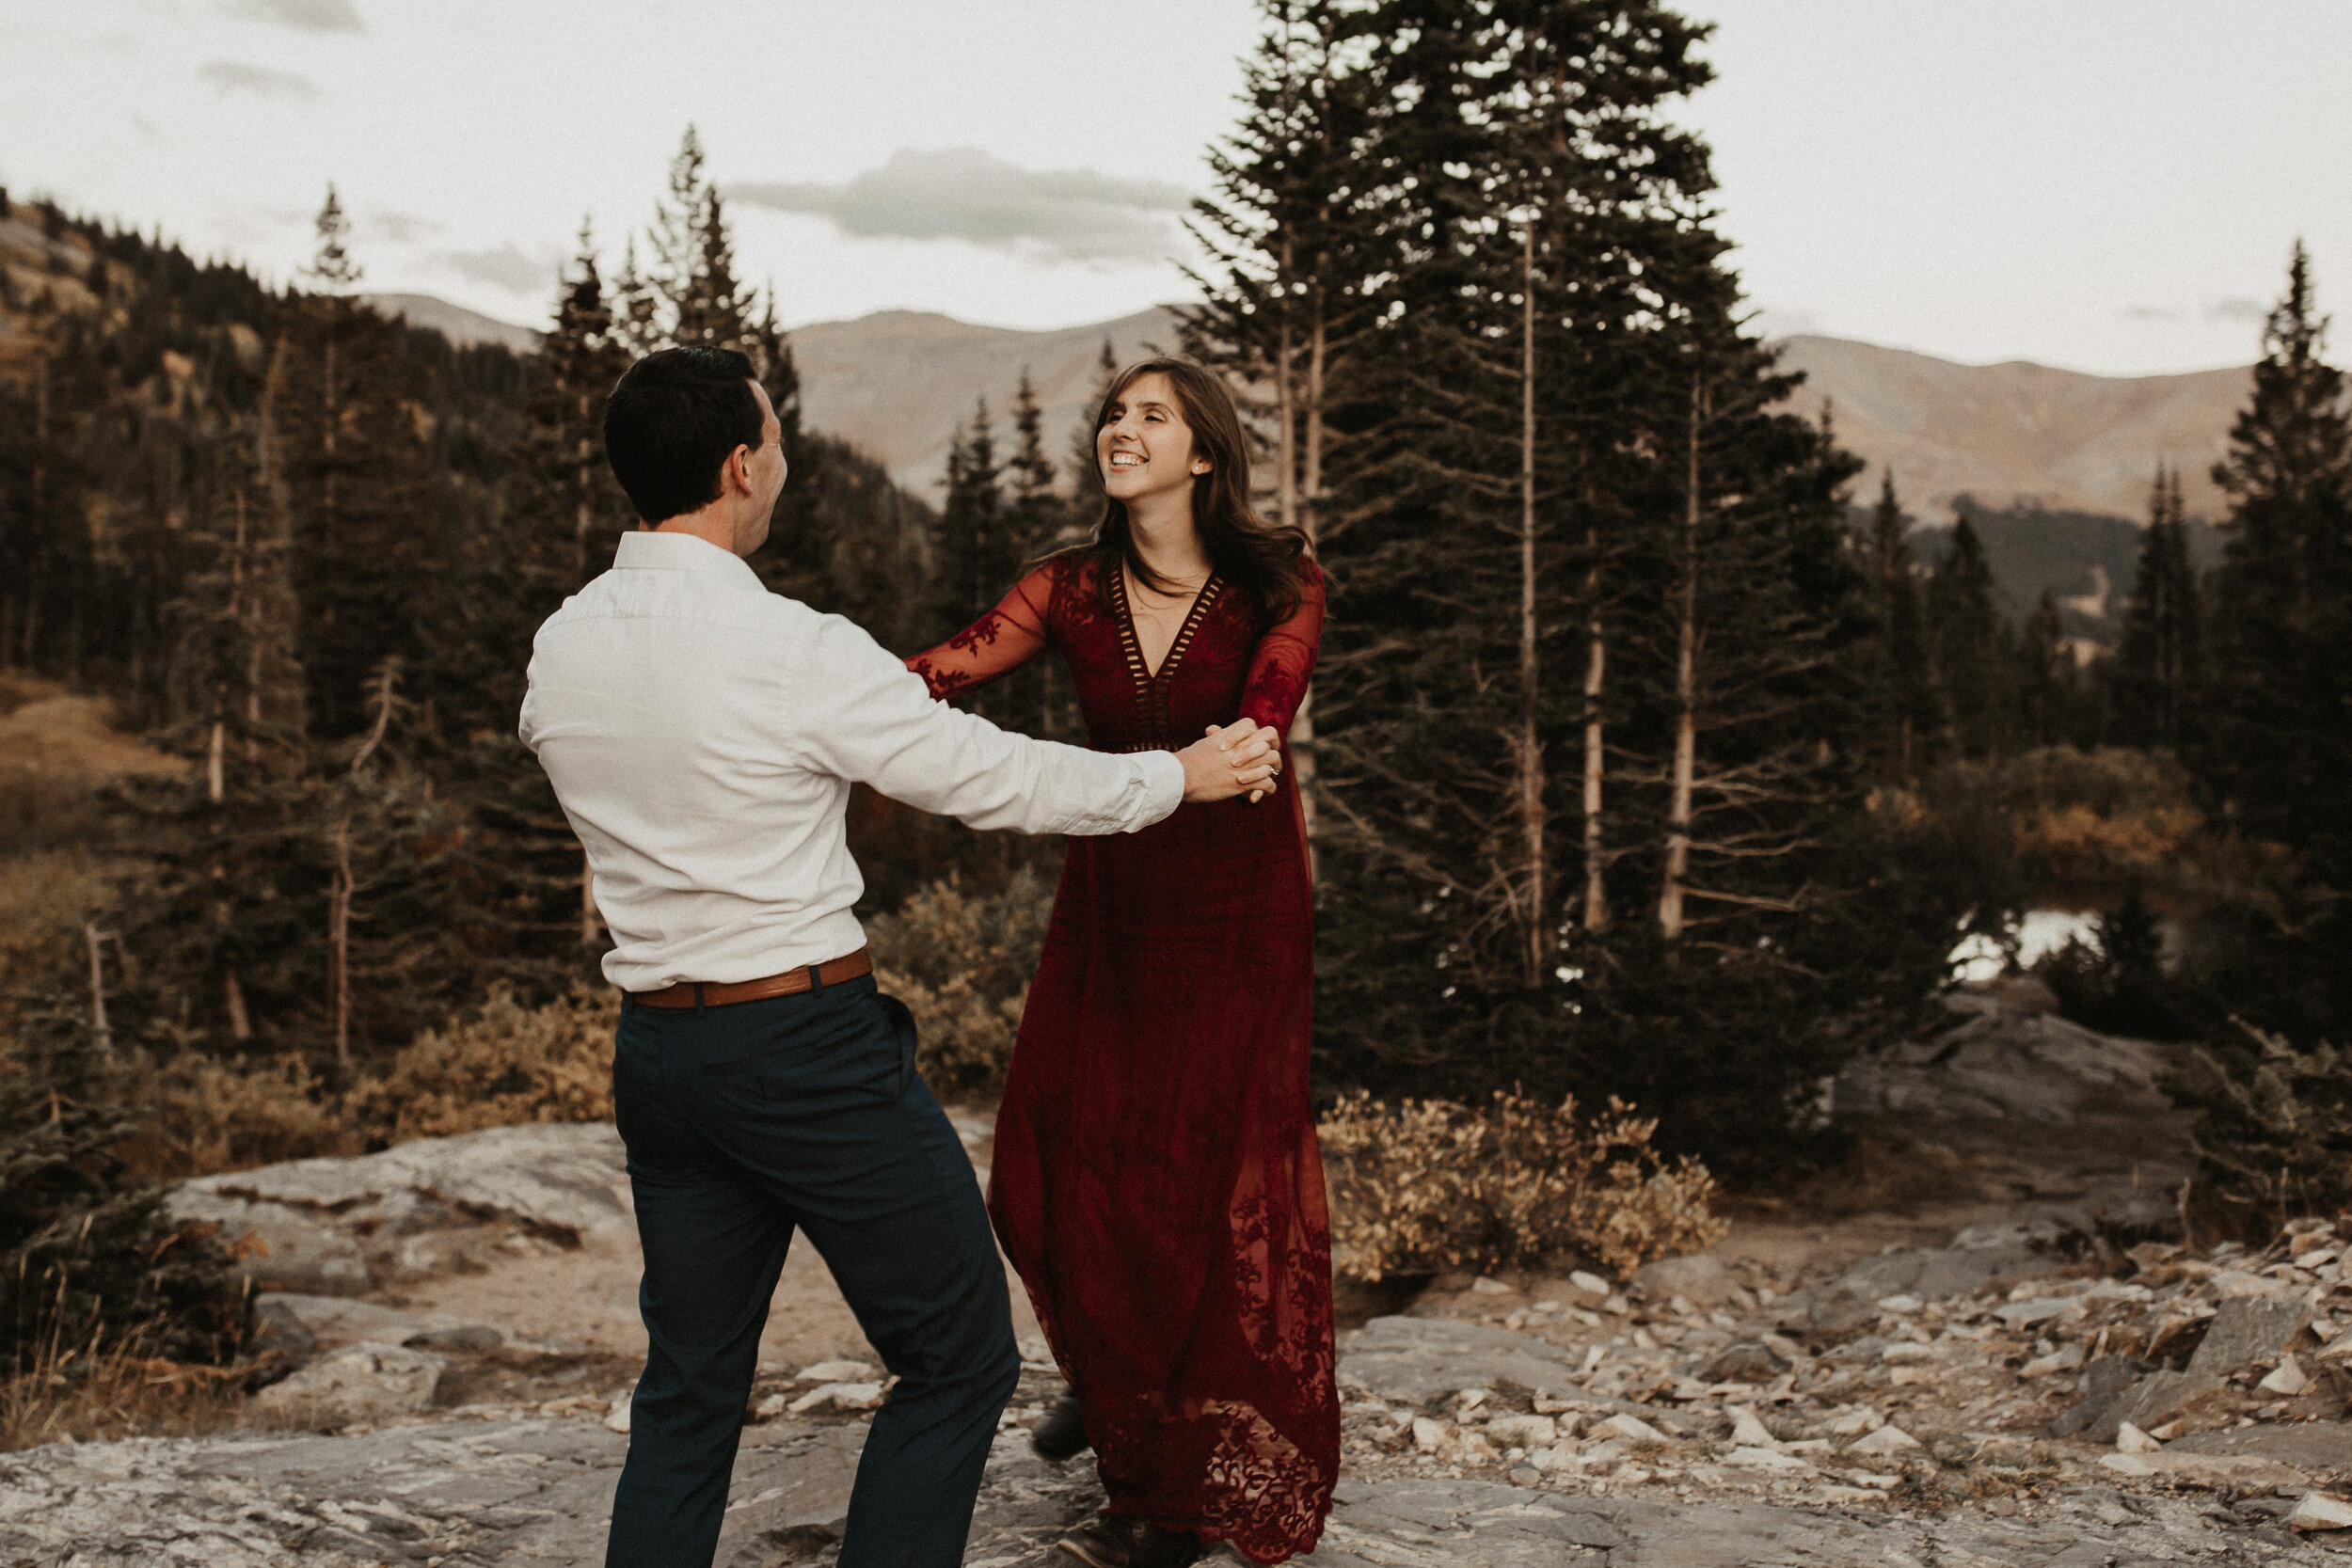 Claire_&_Matthew_Engagment_Breckenridge_Colorado_Fall_0634.jpg